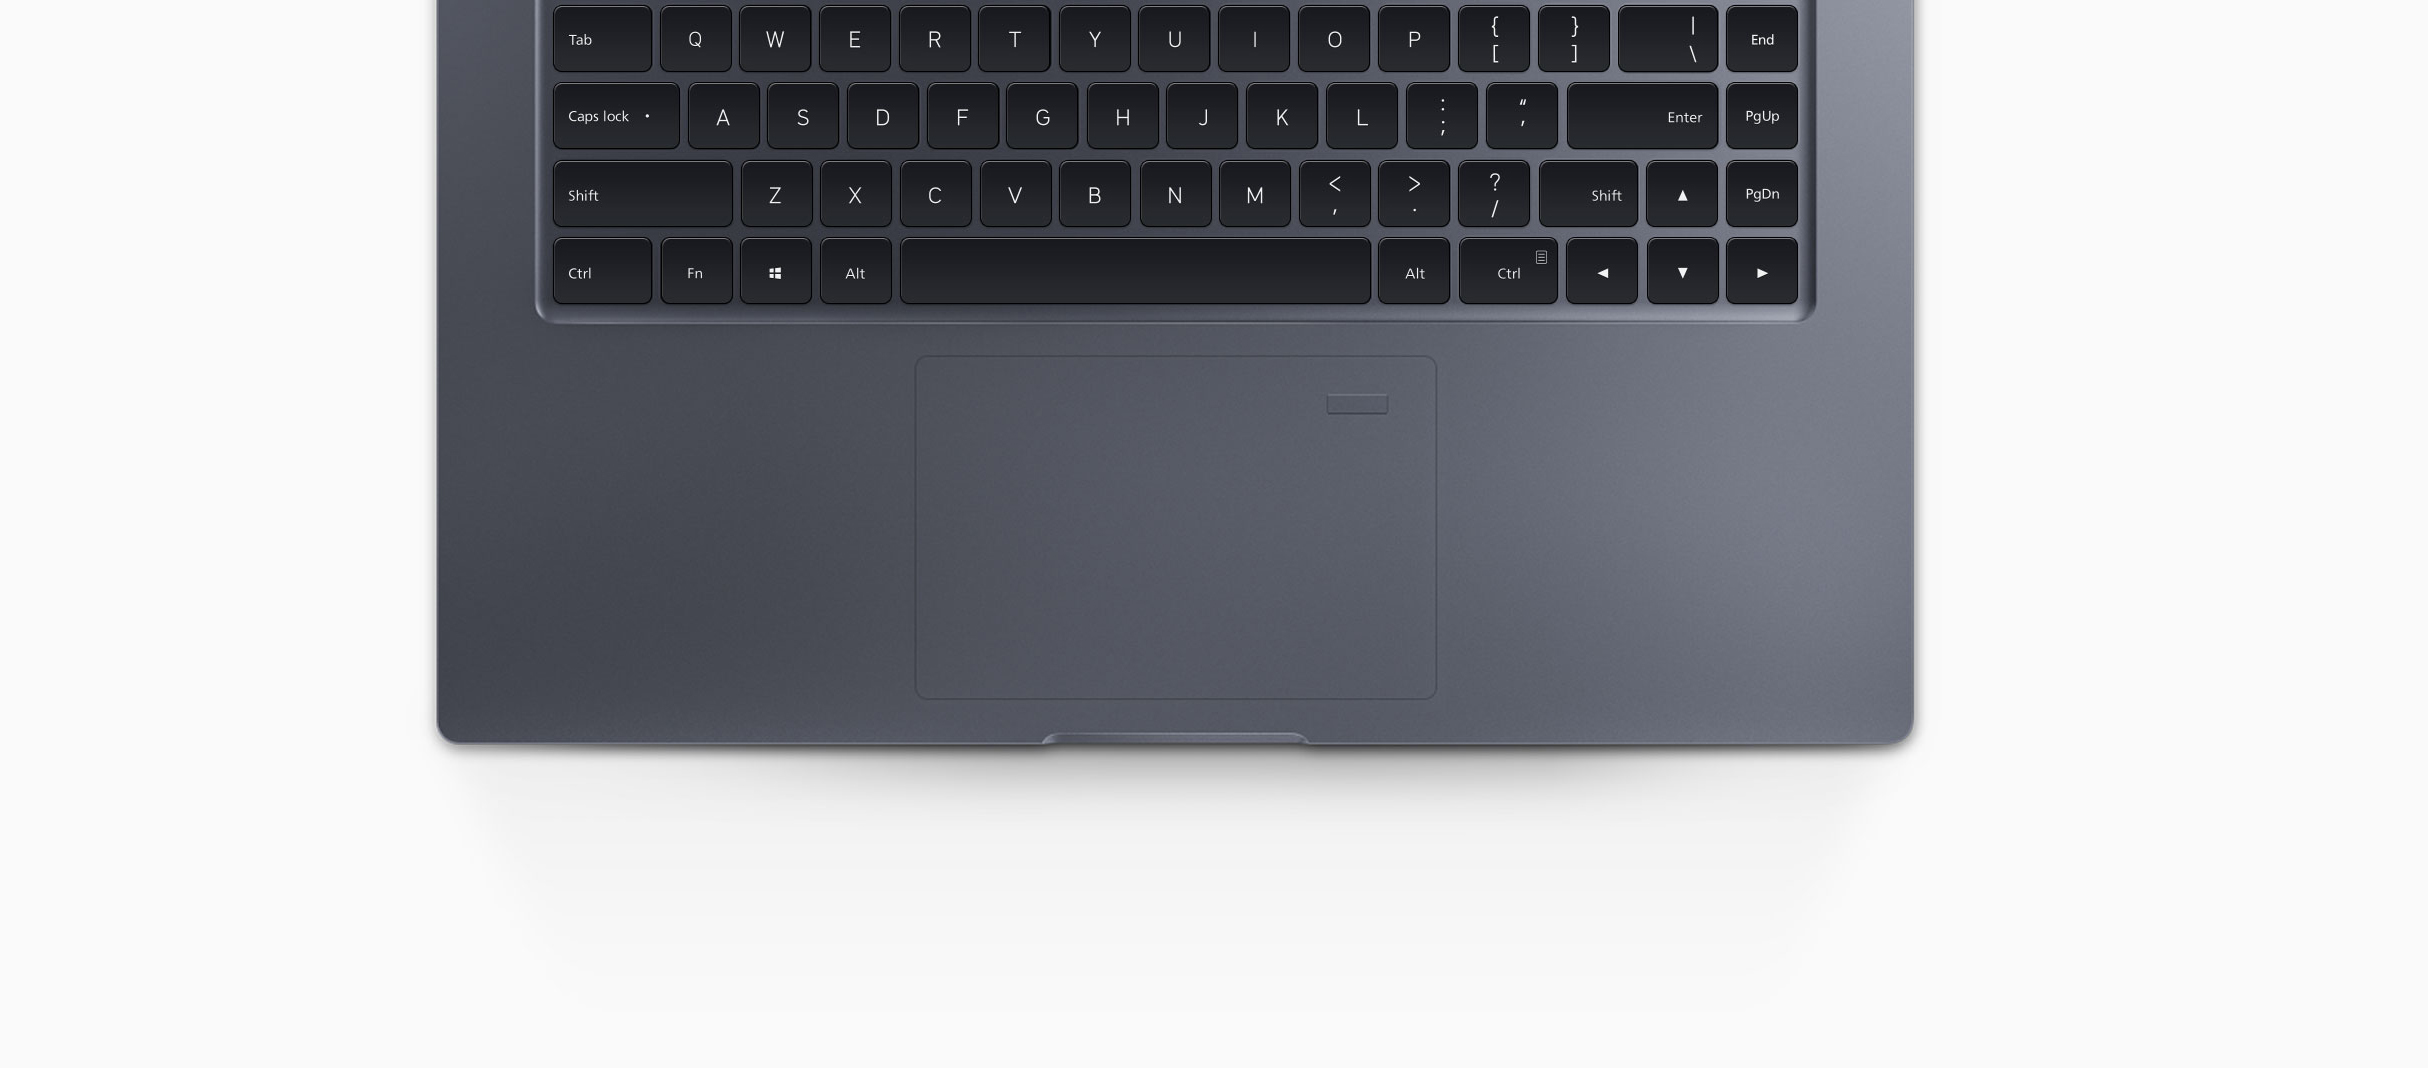 Xiaomi Mi Notebook Pro 15.6 Fingerprint sensor